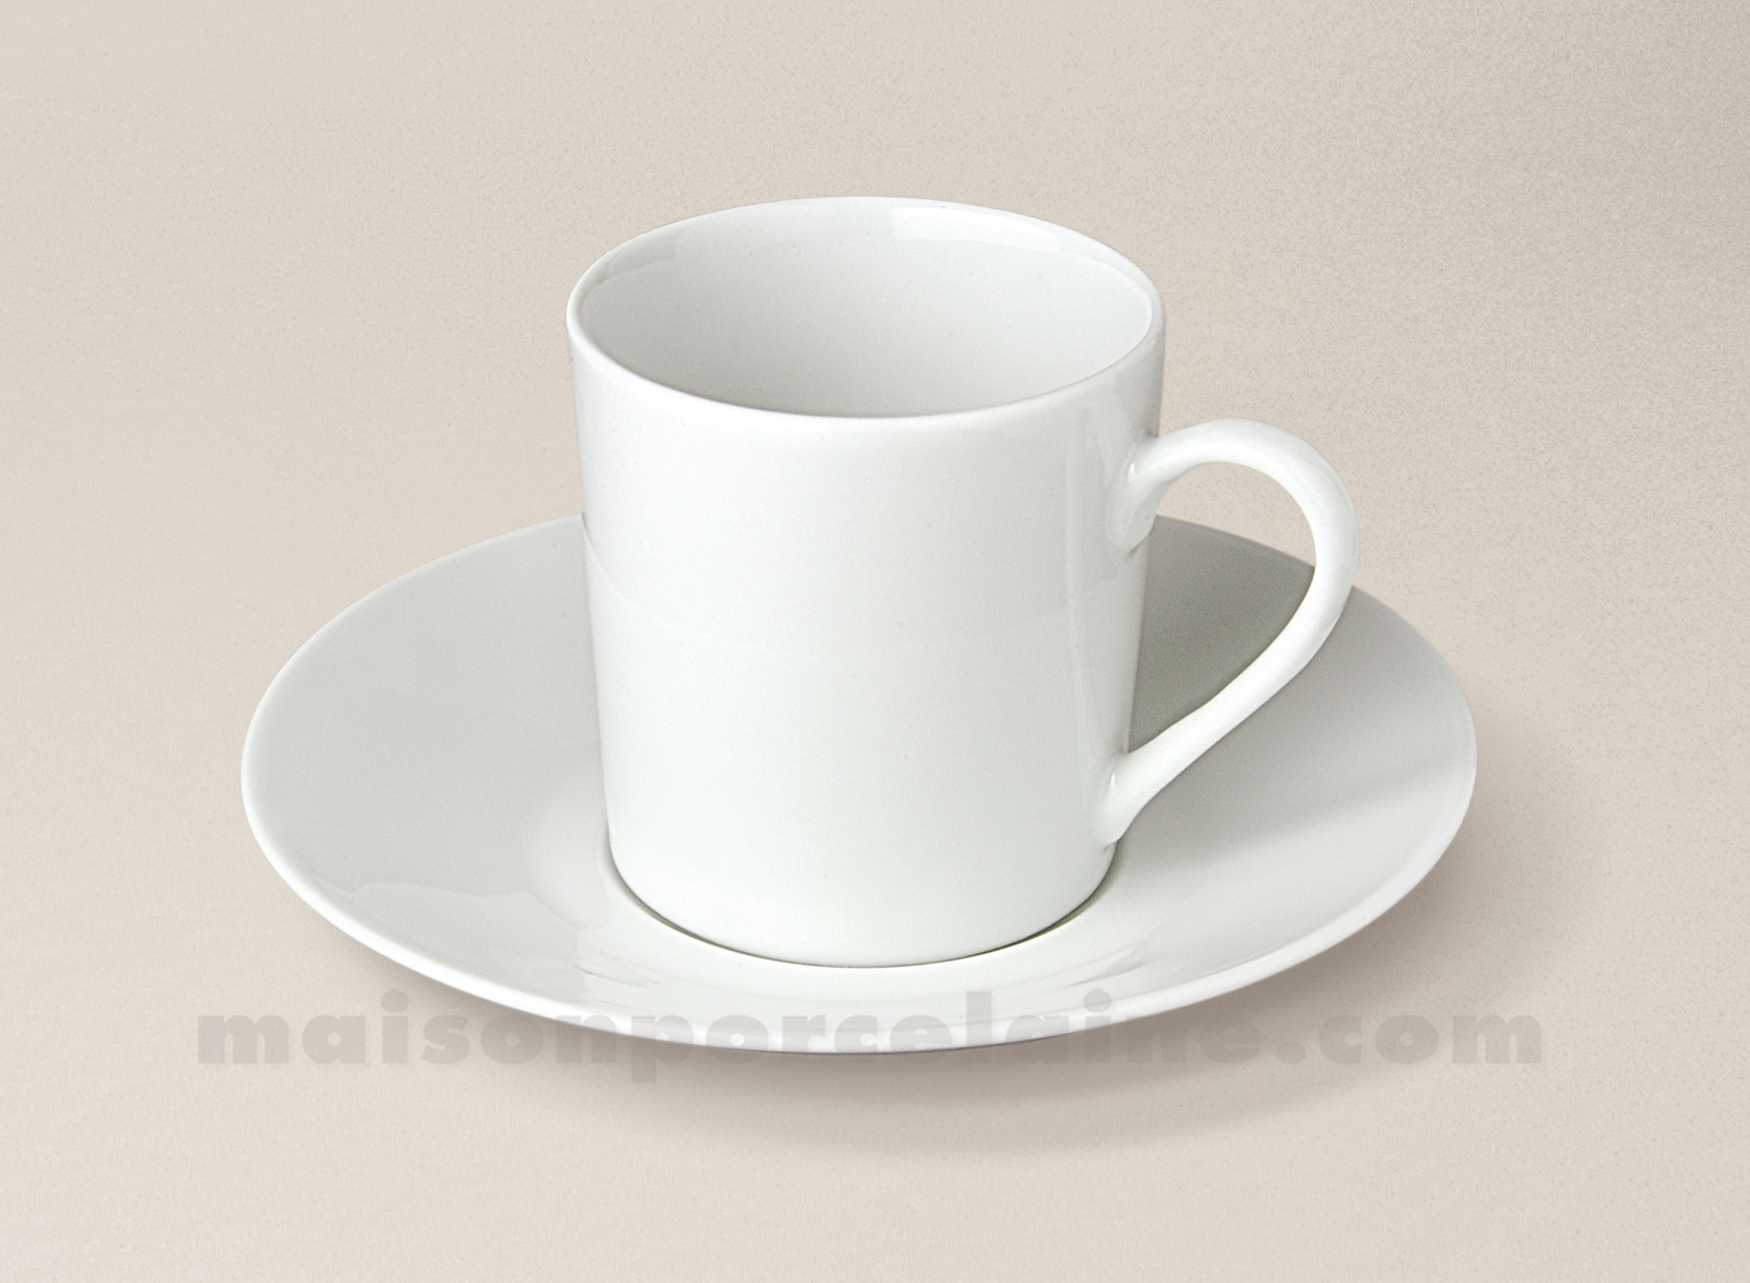 tasse a cafe blanche tasse caf 17 cl m lamine blanche. Black Bedroom Furniture Sets. Home Design Ideas